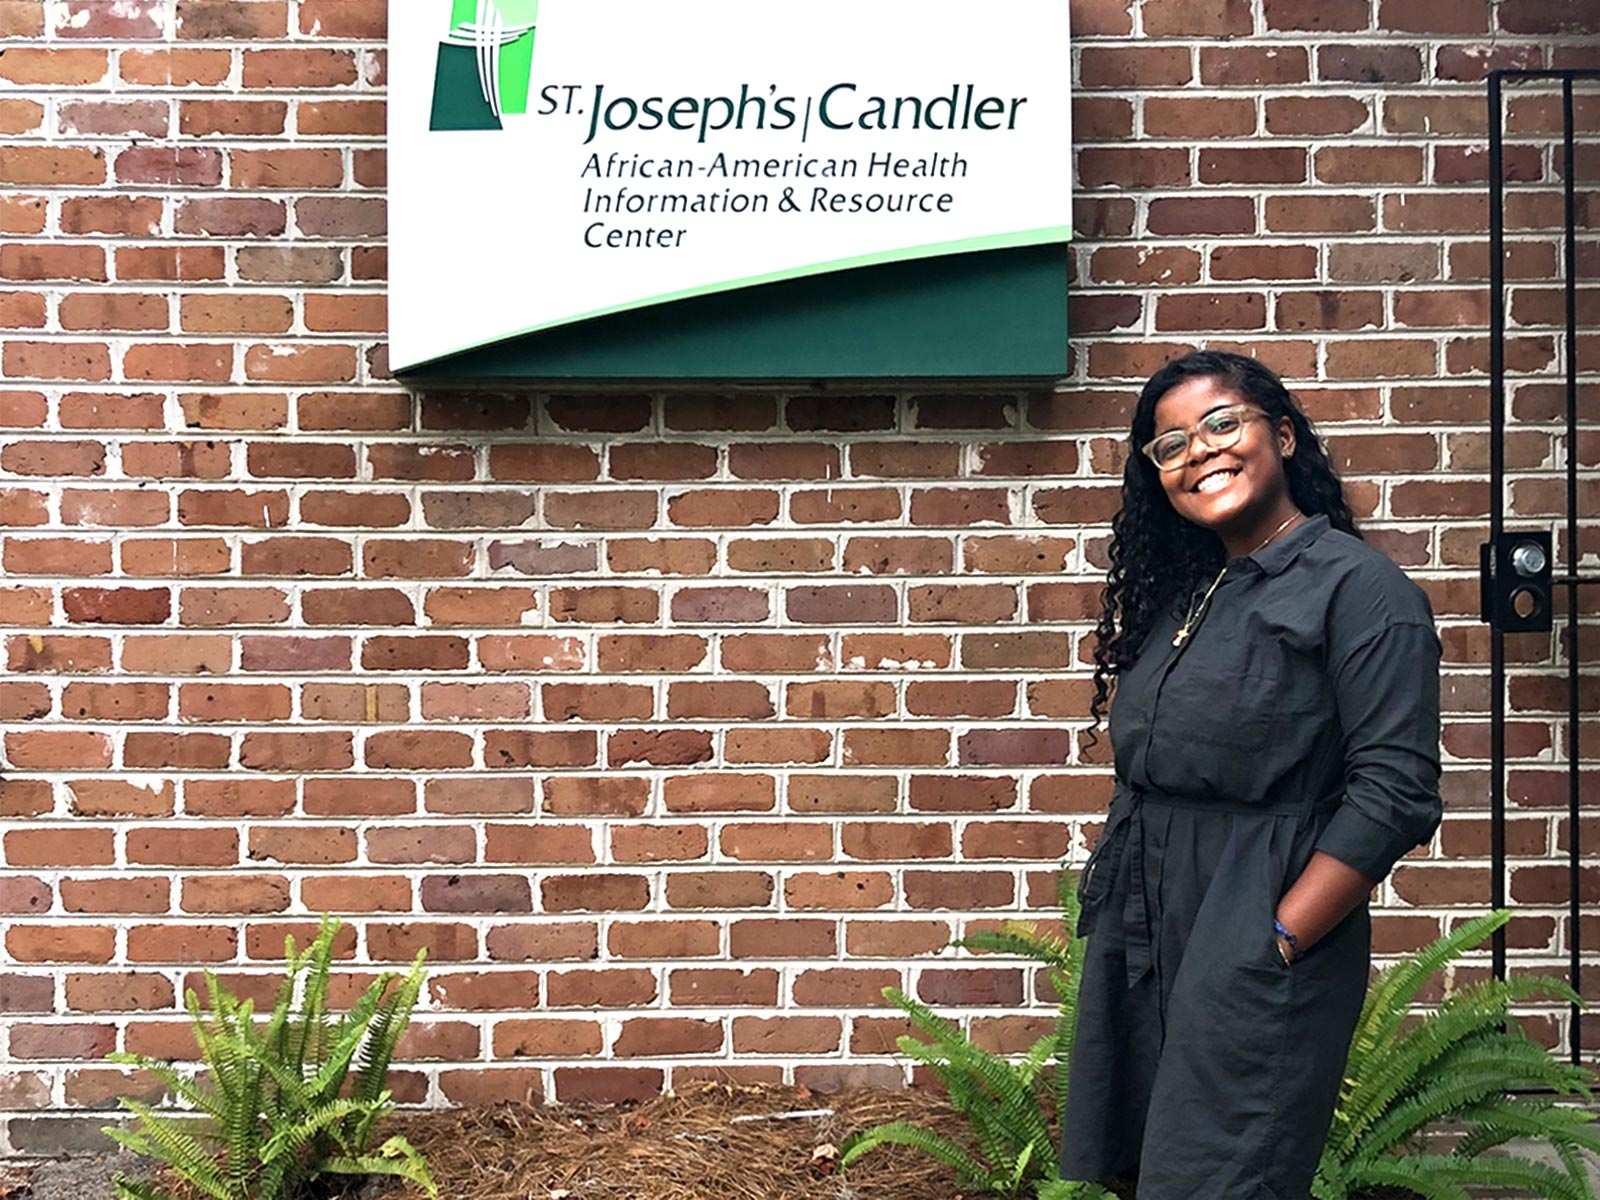 A Summer in Savannah Promoting Healthcare Access - News